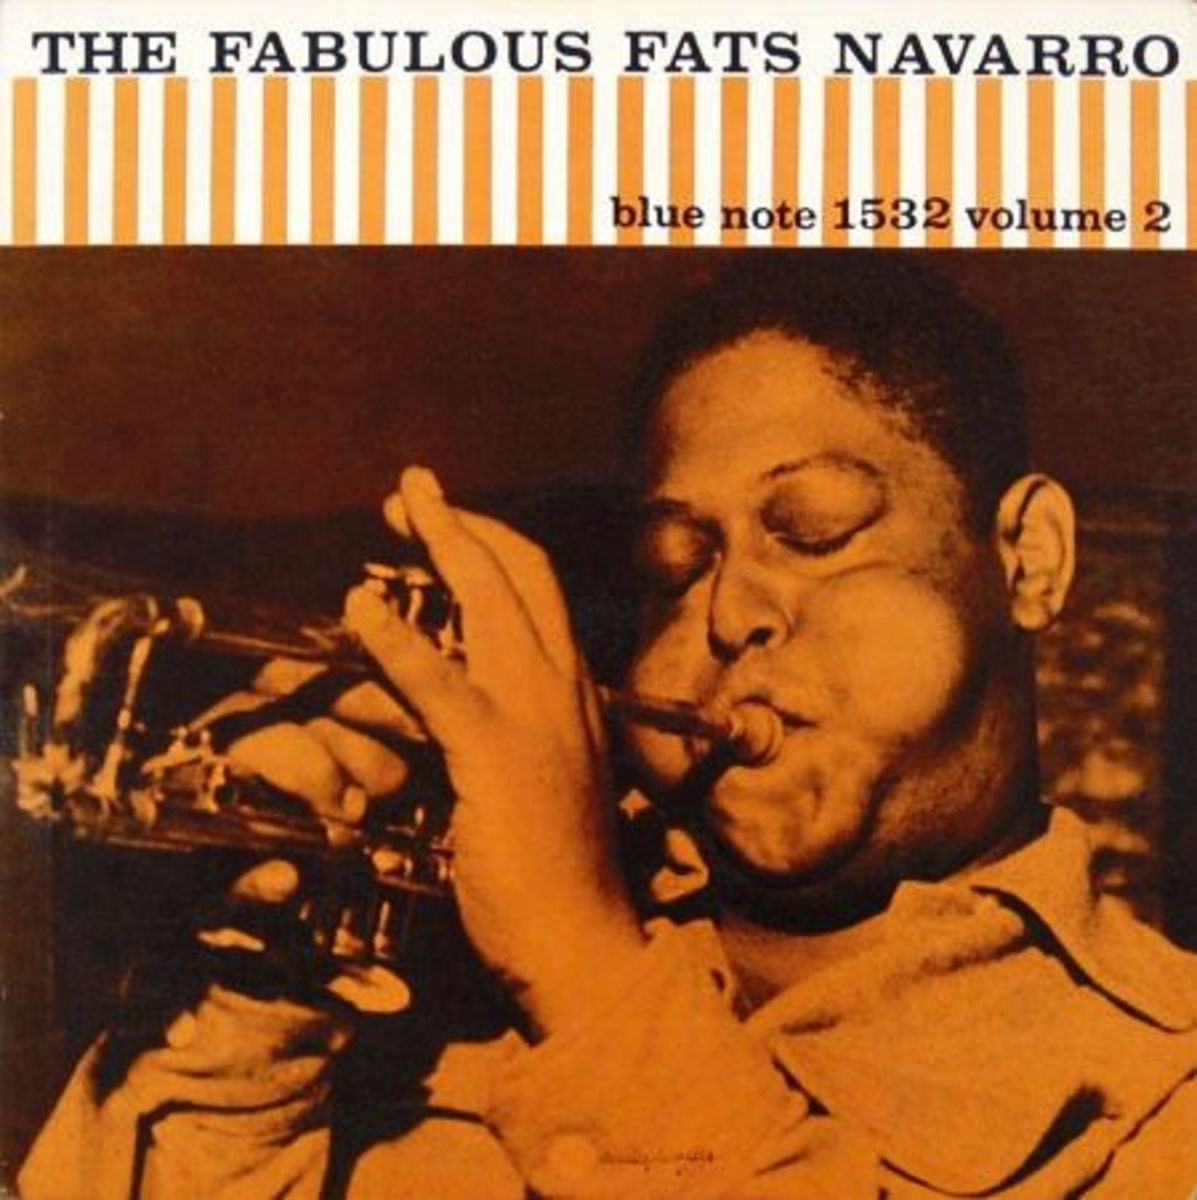 "Fats Navarro ""Fabulous Fats Navarro, vol. 2"" Blue Note Records 1532 12"" LP Vinyl Record (1956) Album Cover Design by Reid Miles, Photo by Francis Wolff"